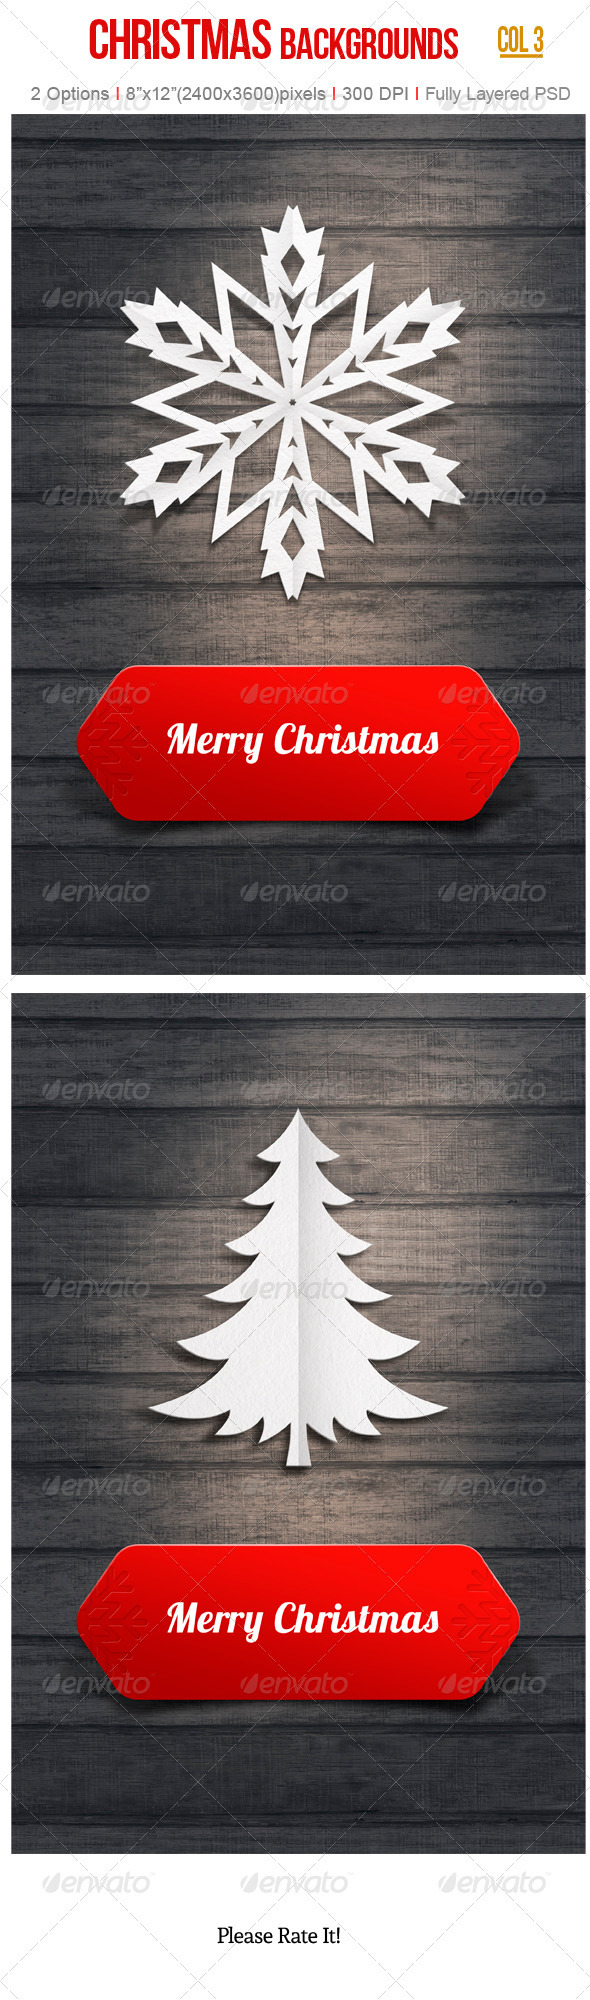 GraphicRiver Christmas Backgrounds 3409183